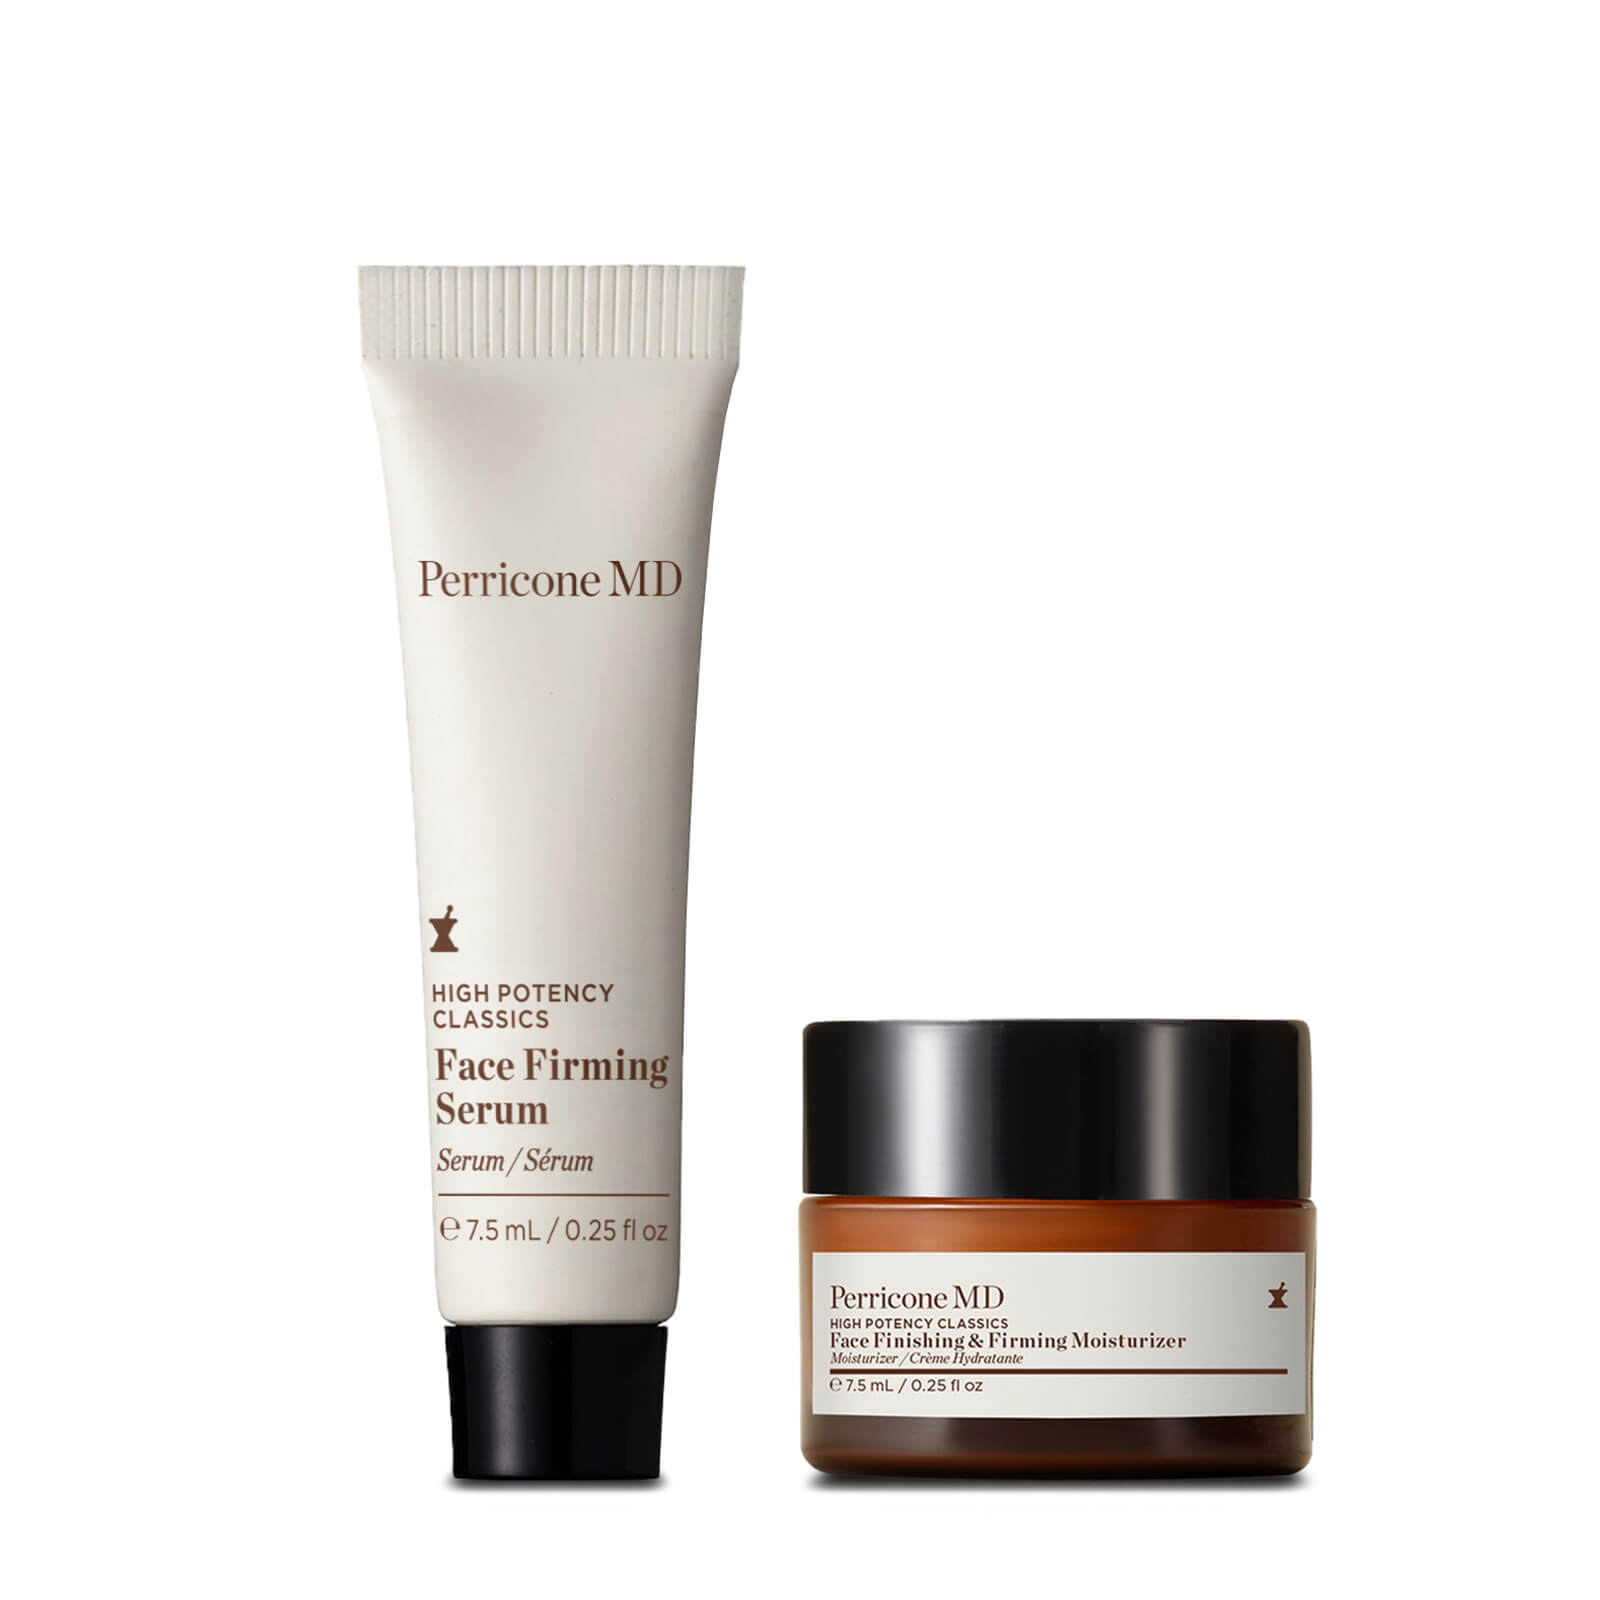 High Potency Classic Firming Deluxe Duo